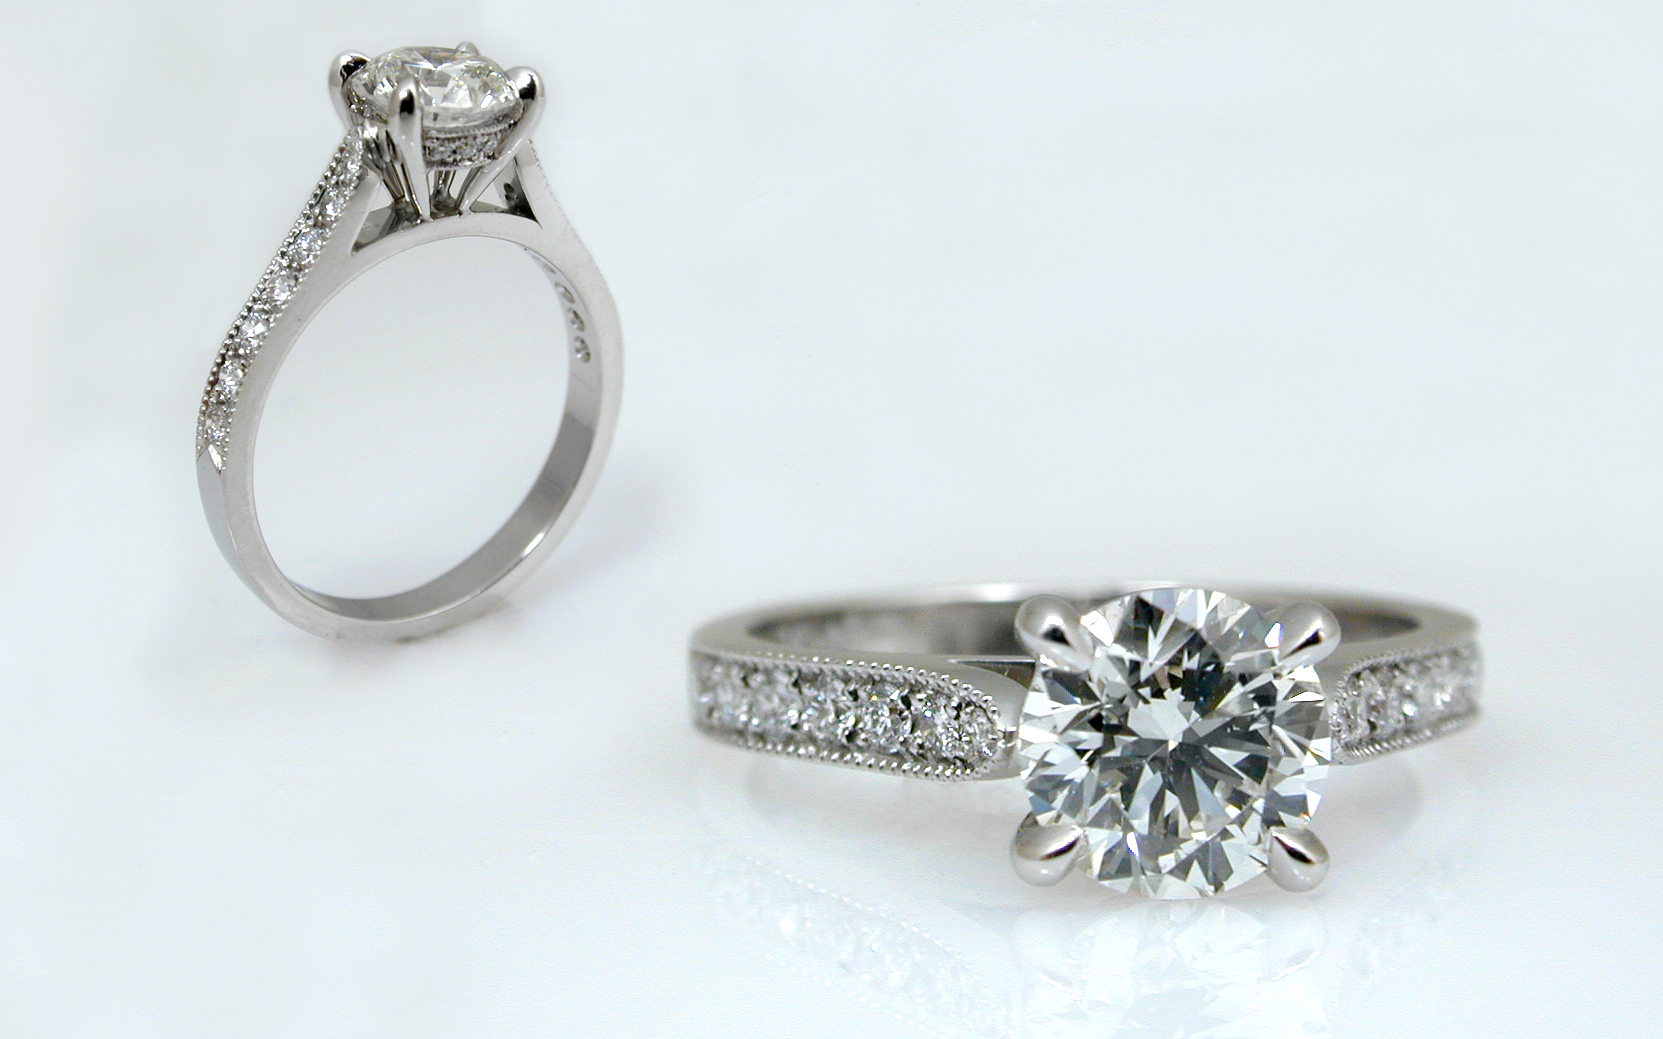 Hand Fabricated .90 carat with Diamond Accented Band and Gallery Wires